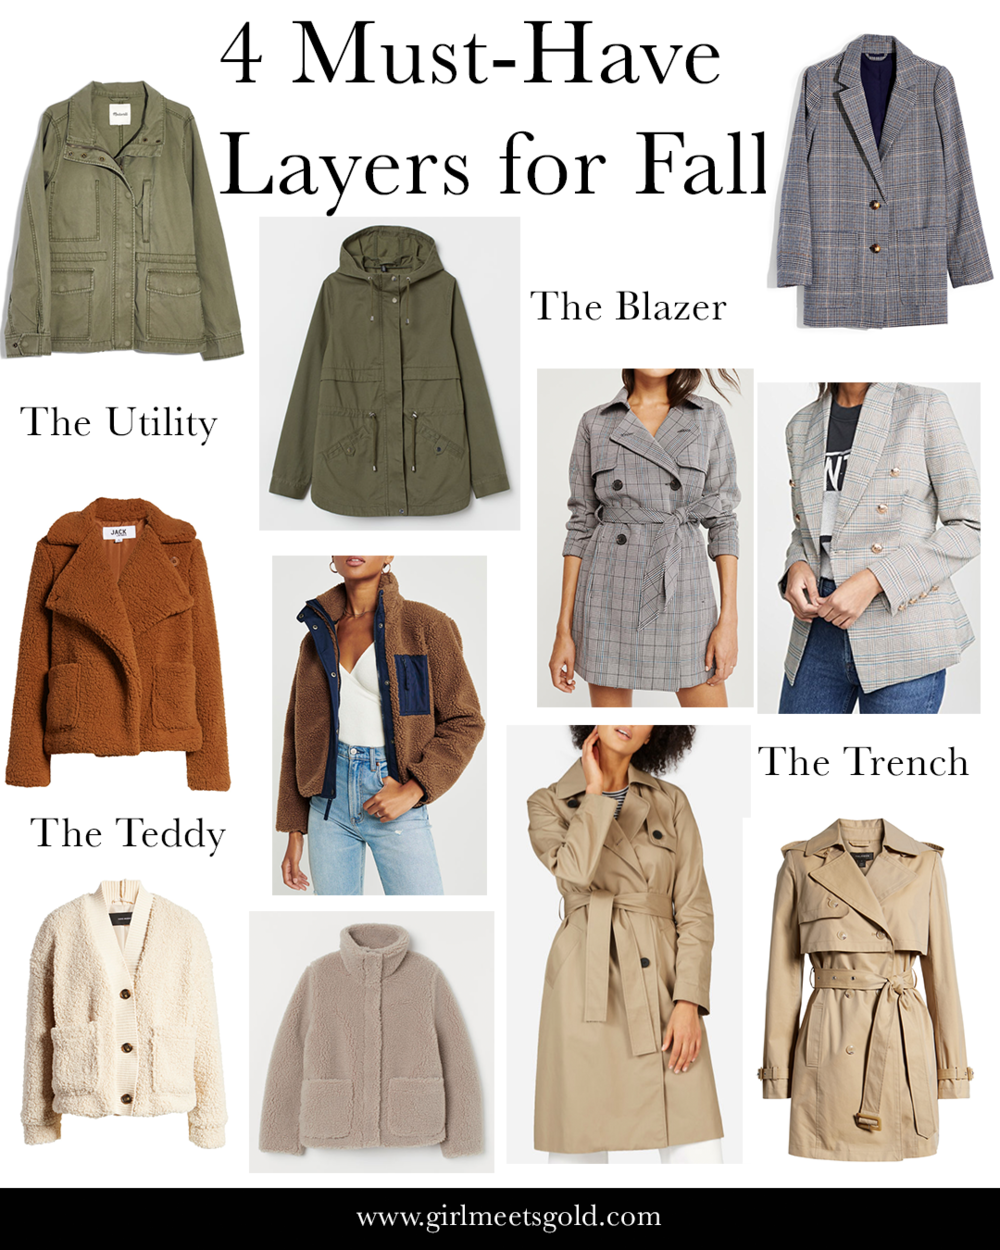 4 Must-Have Layers for Fall | www.girlmeetsgold.com